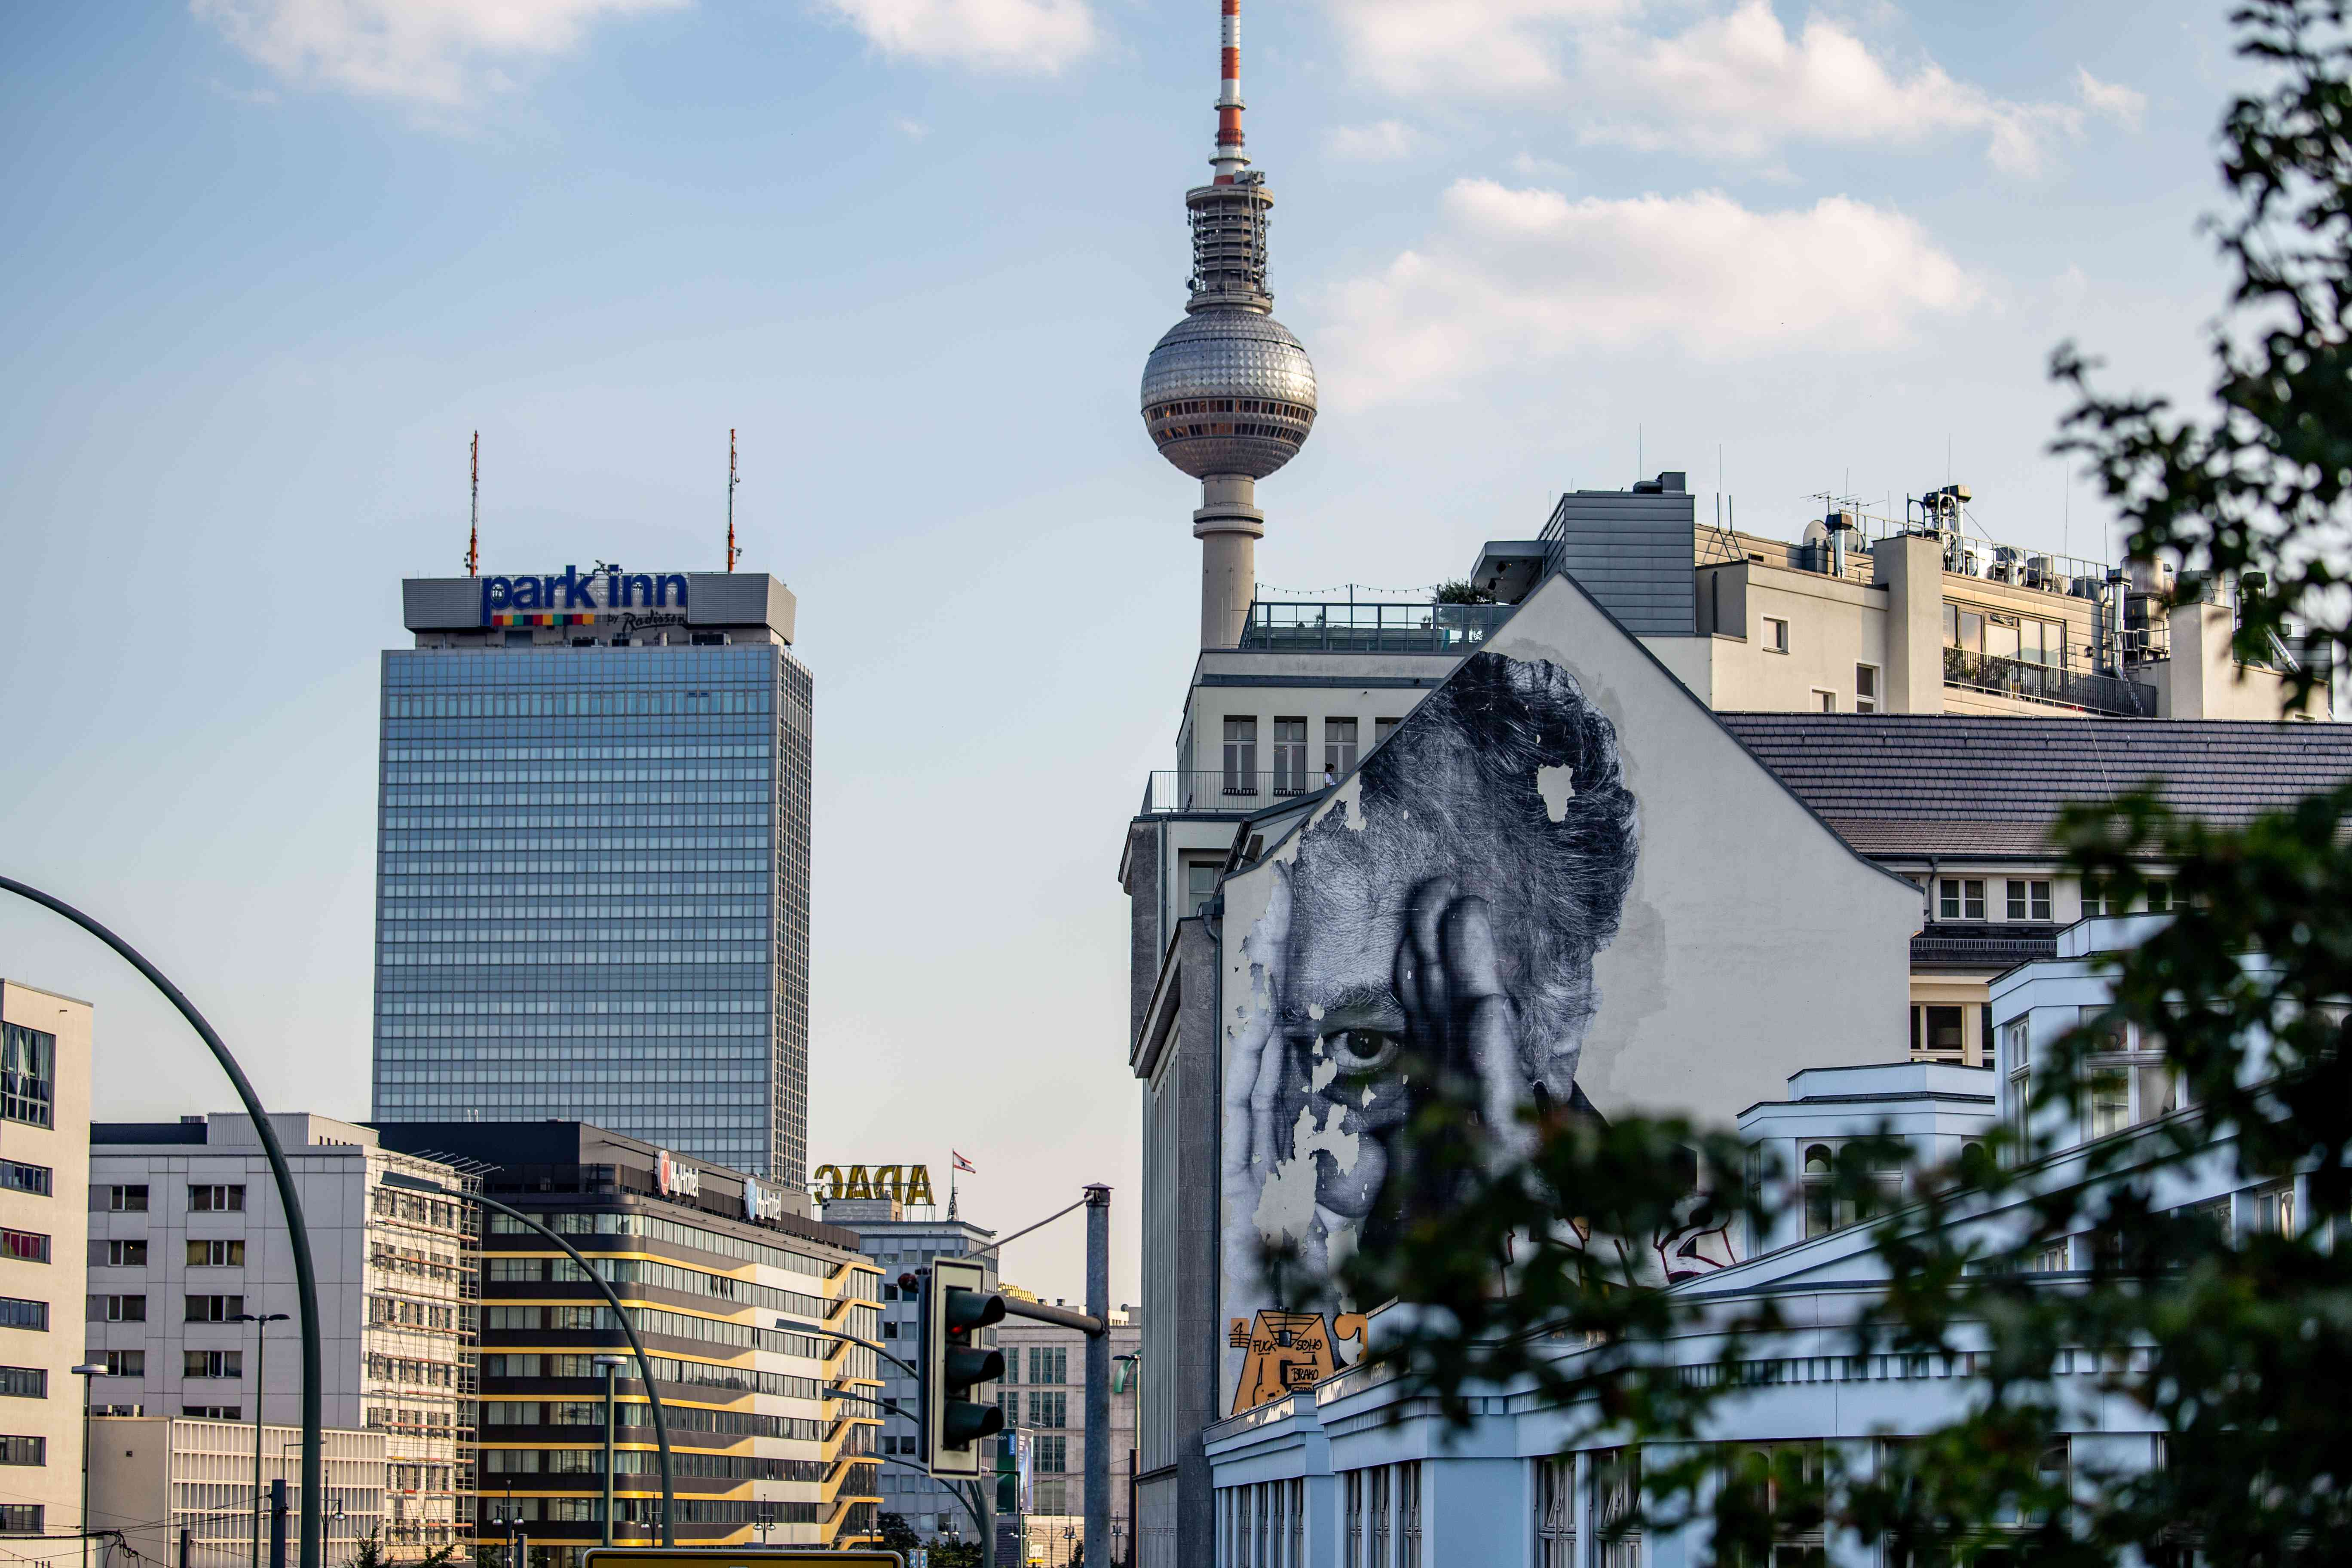 The mural Wrinkles of the city